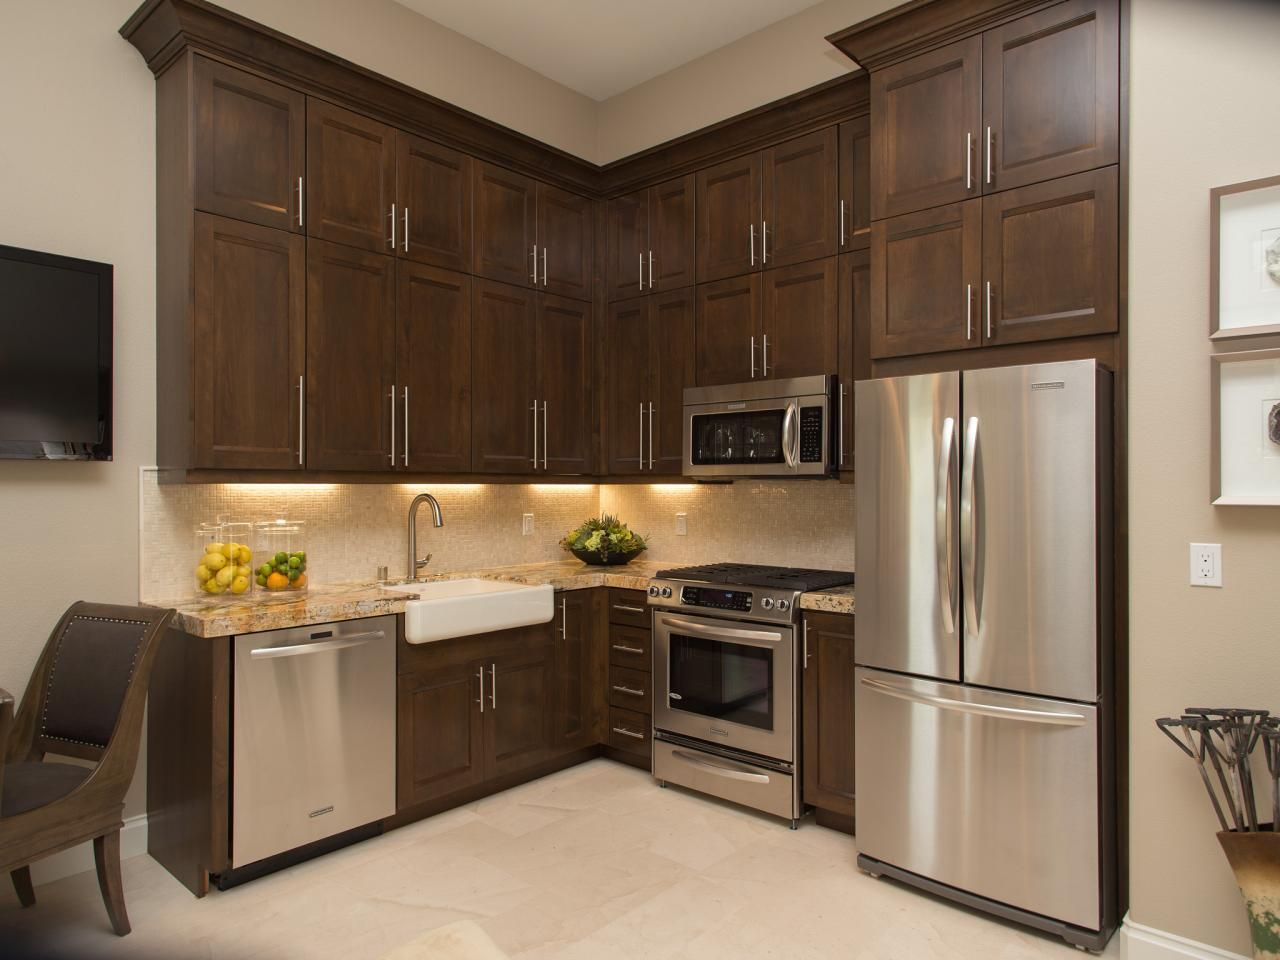 guest house kitchen. Property Brothers At Home: Tour Their Guest House Kitchen